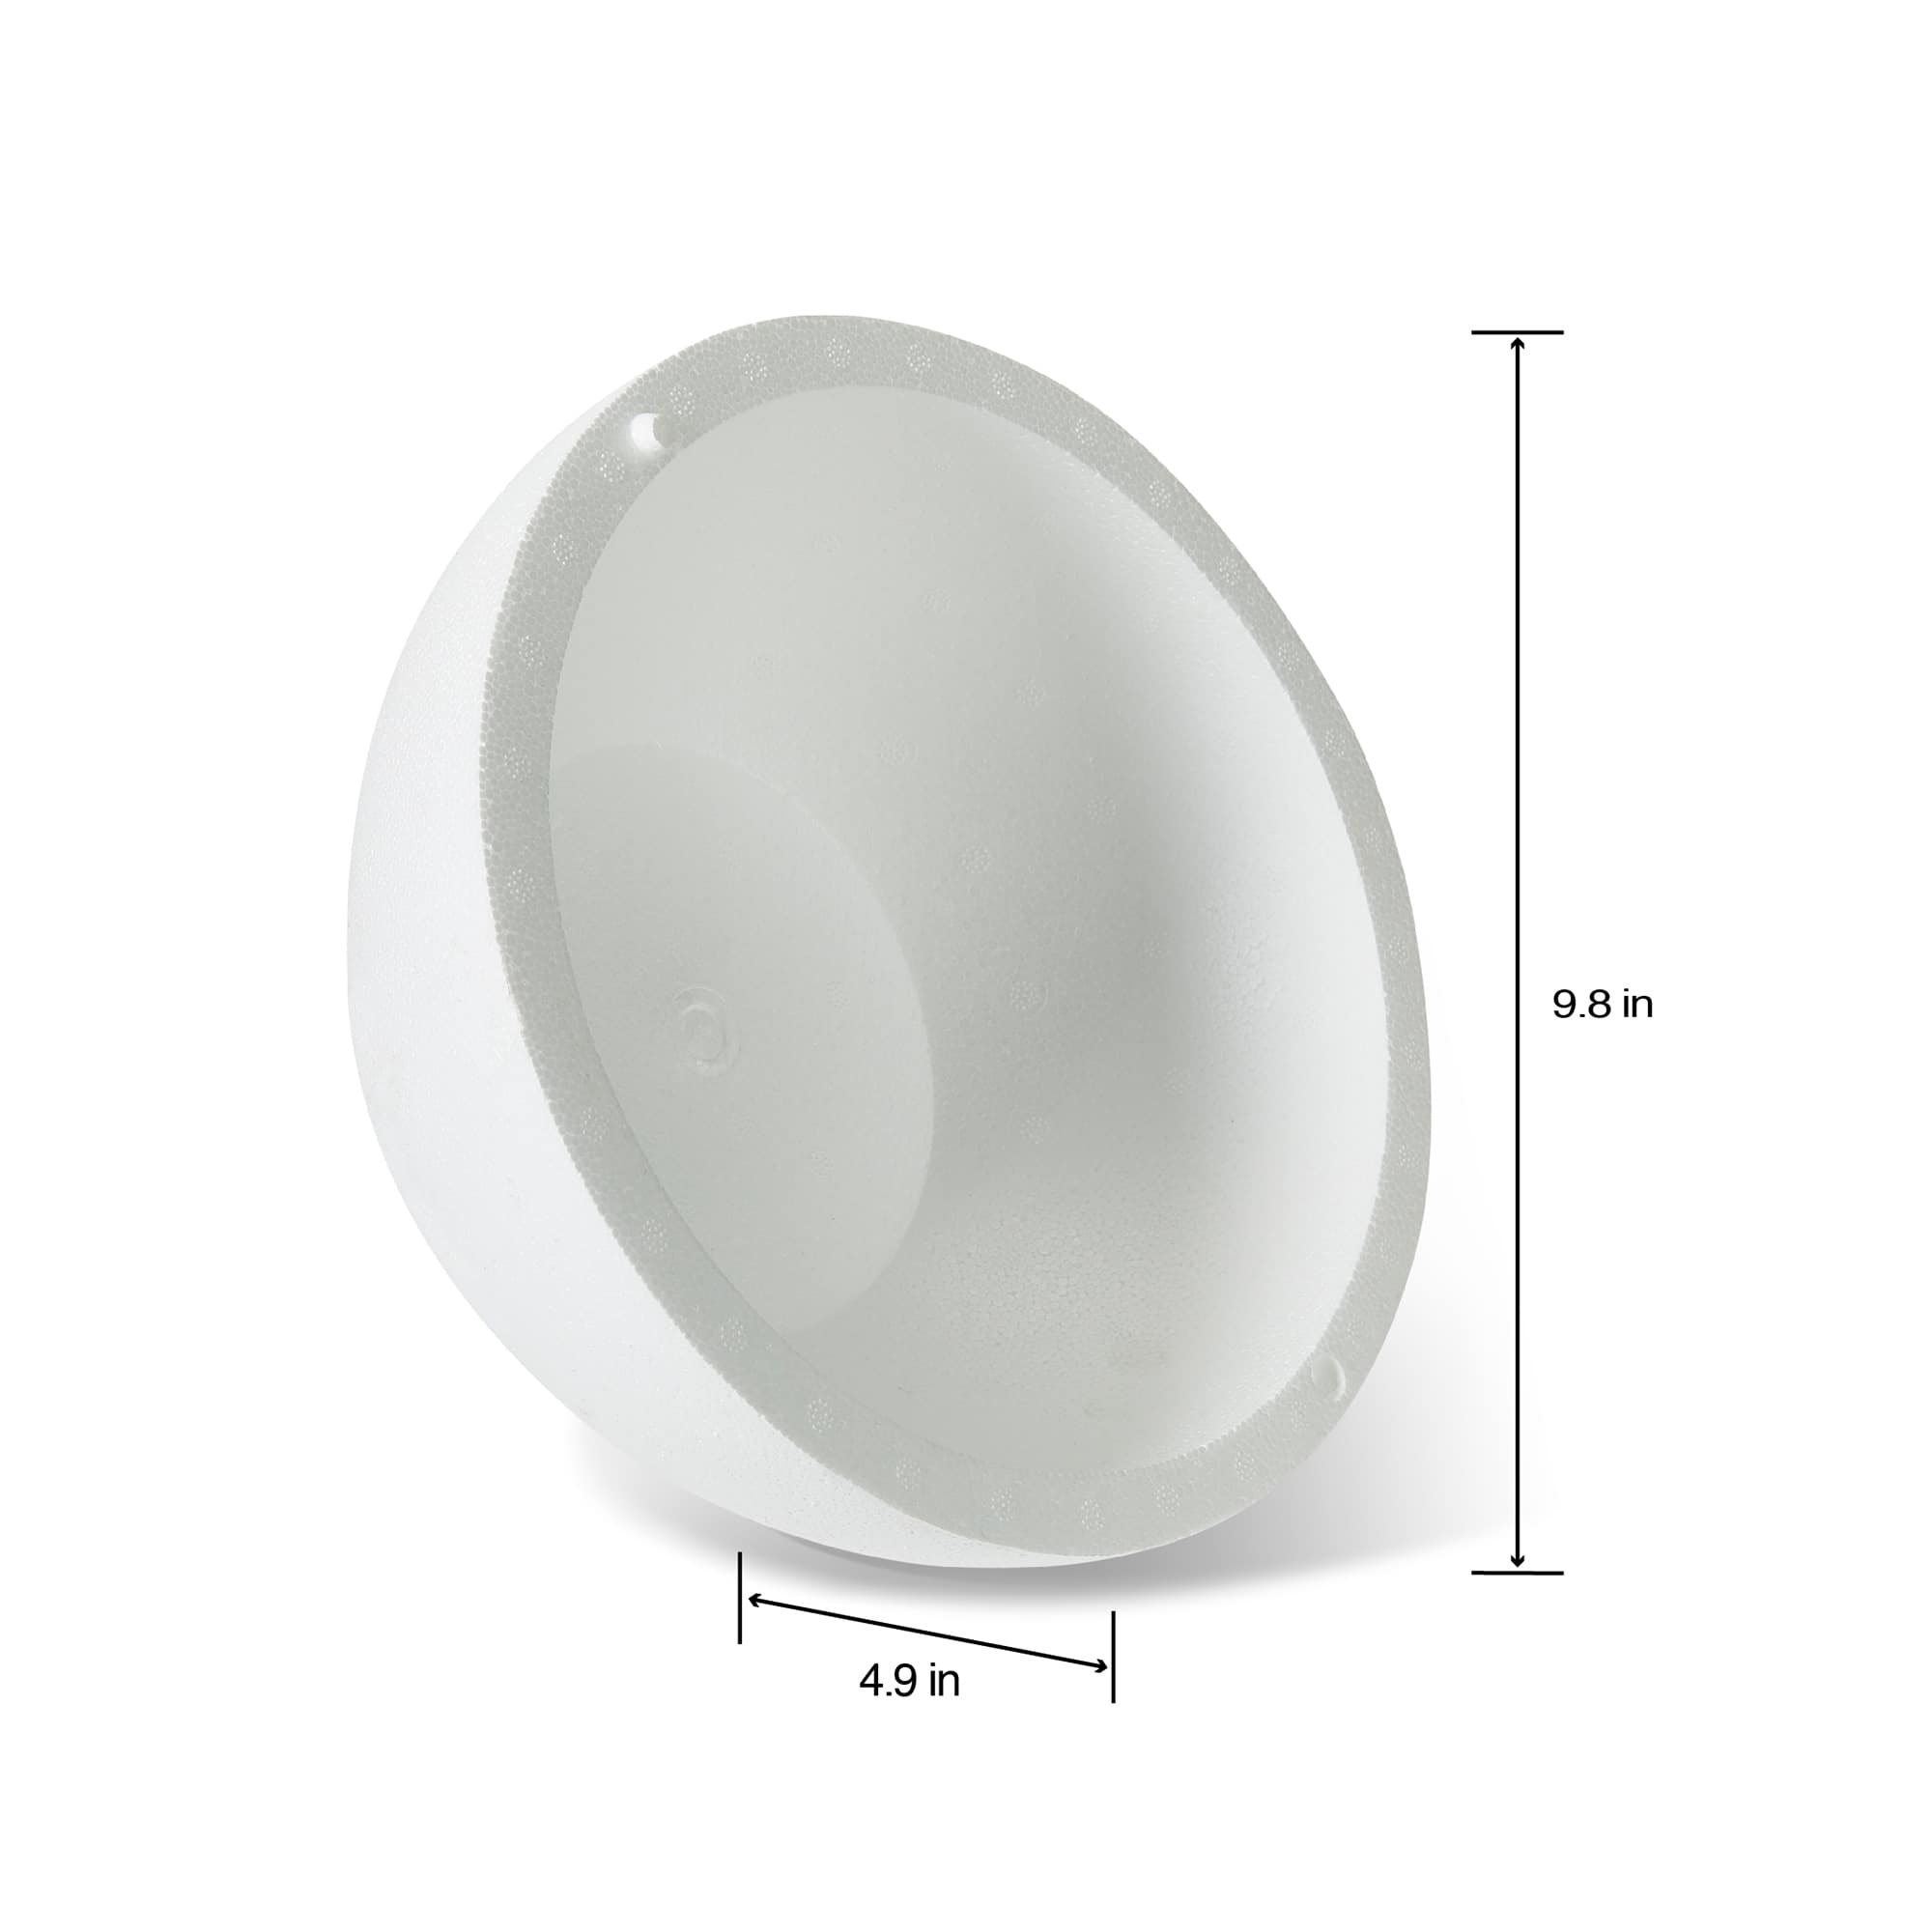 Makes Large DIY Ornaments Presentation White Large Polystyrene Foam Hollow Half Ball for Arts and Craft Use Foam Half Ball and School Projects 12 x 12 x 6 Inches